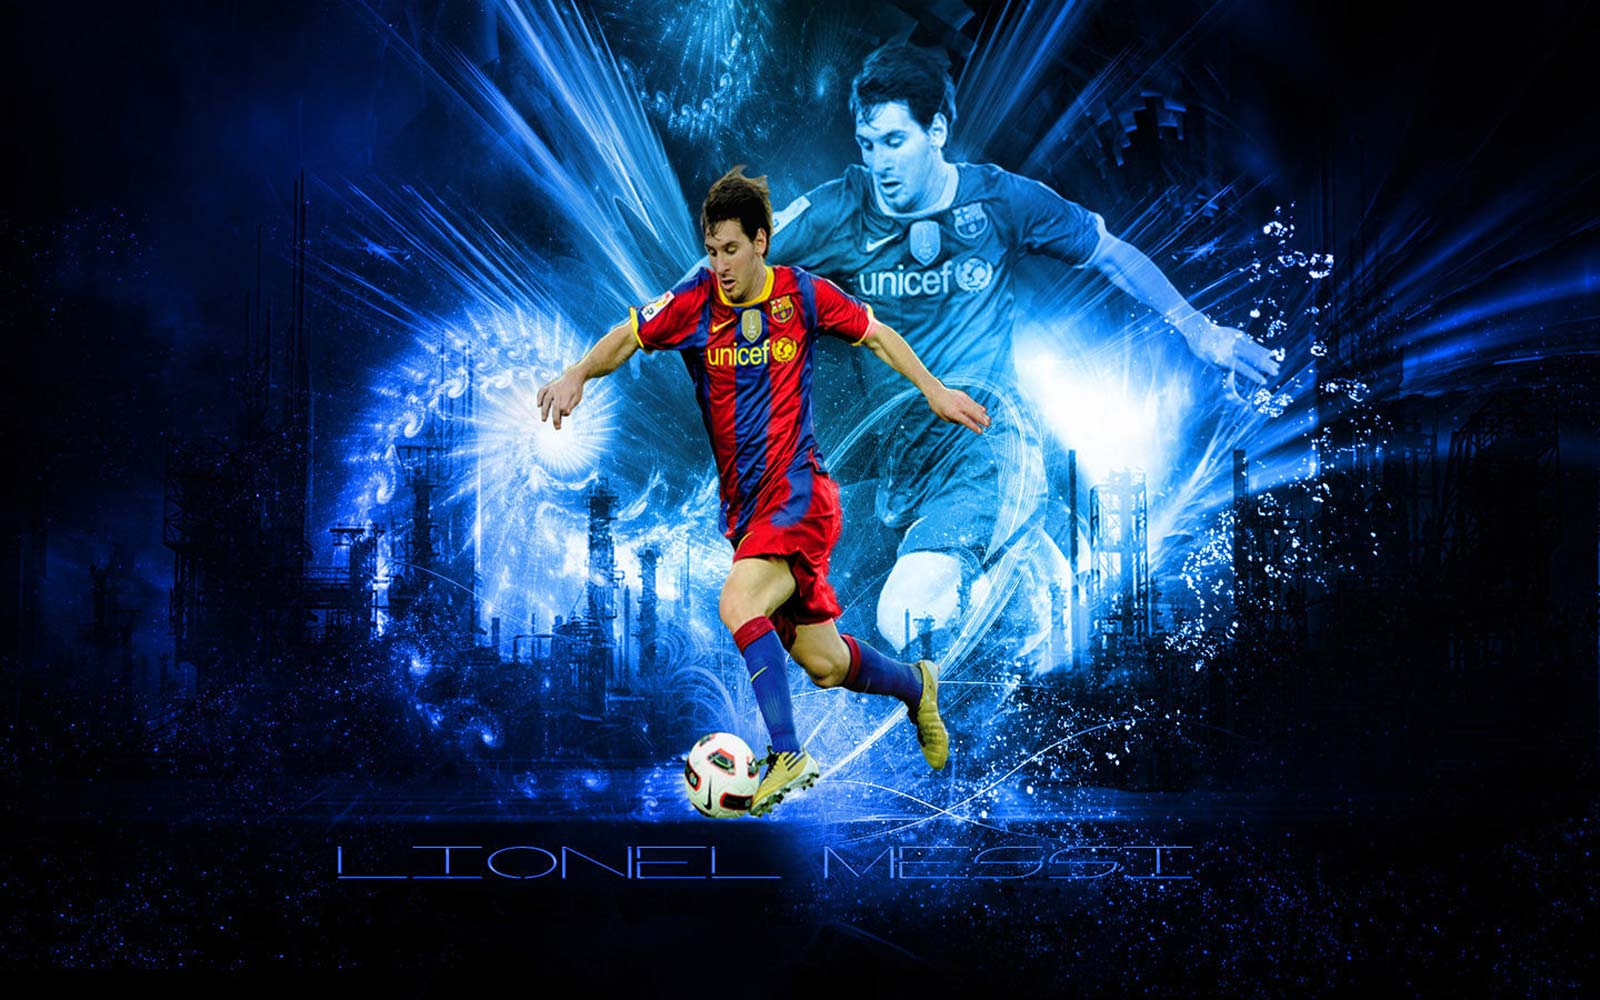 Lionel Messi Wallpapers - Fc Barcelona Messi , HD Wallpaper & Backgrounds